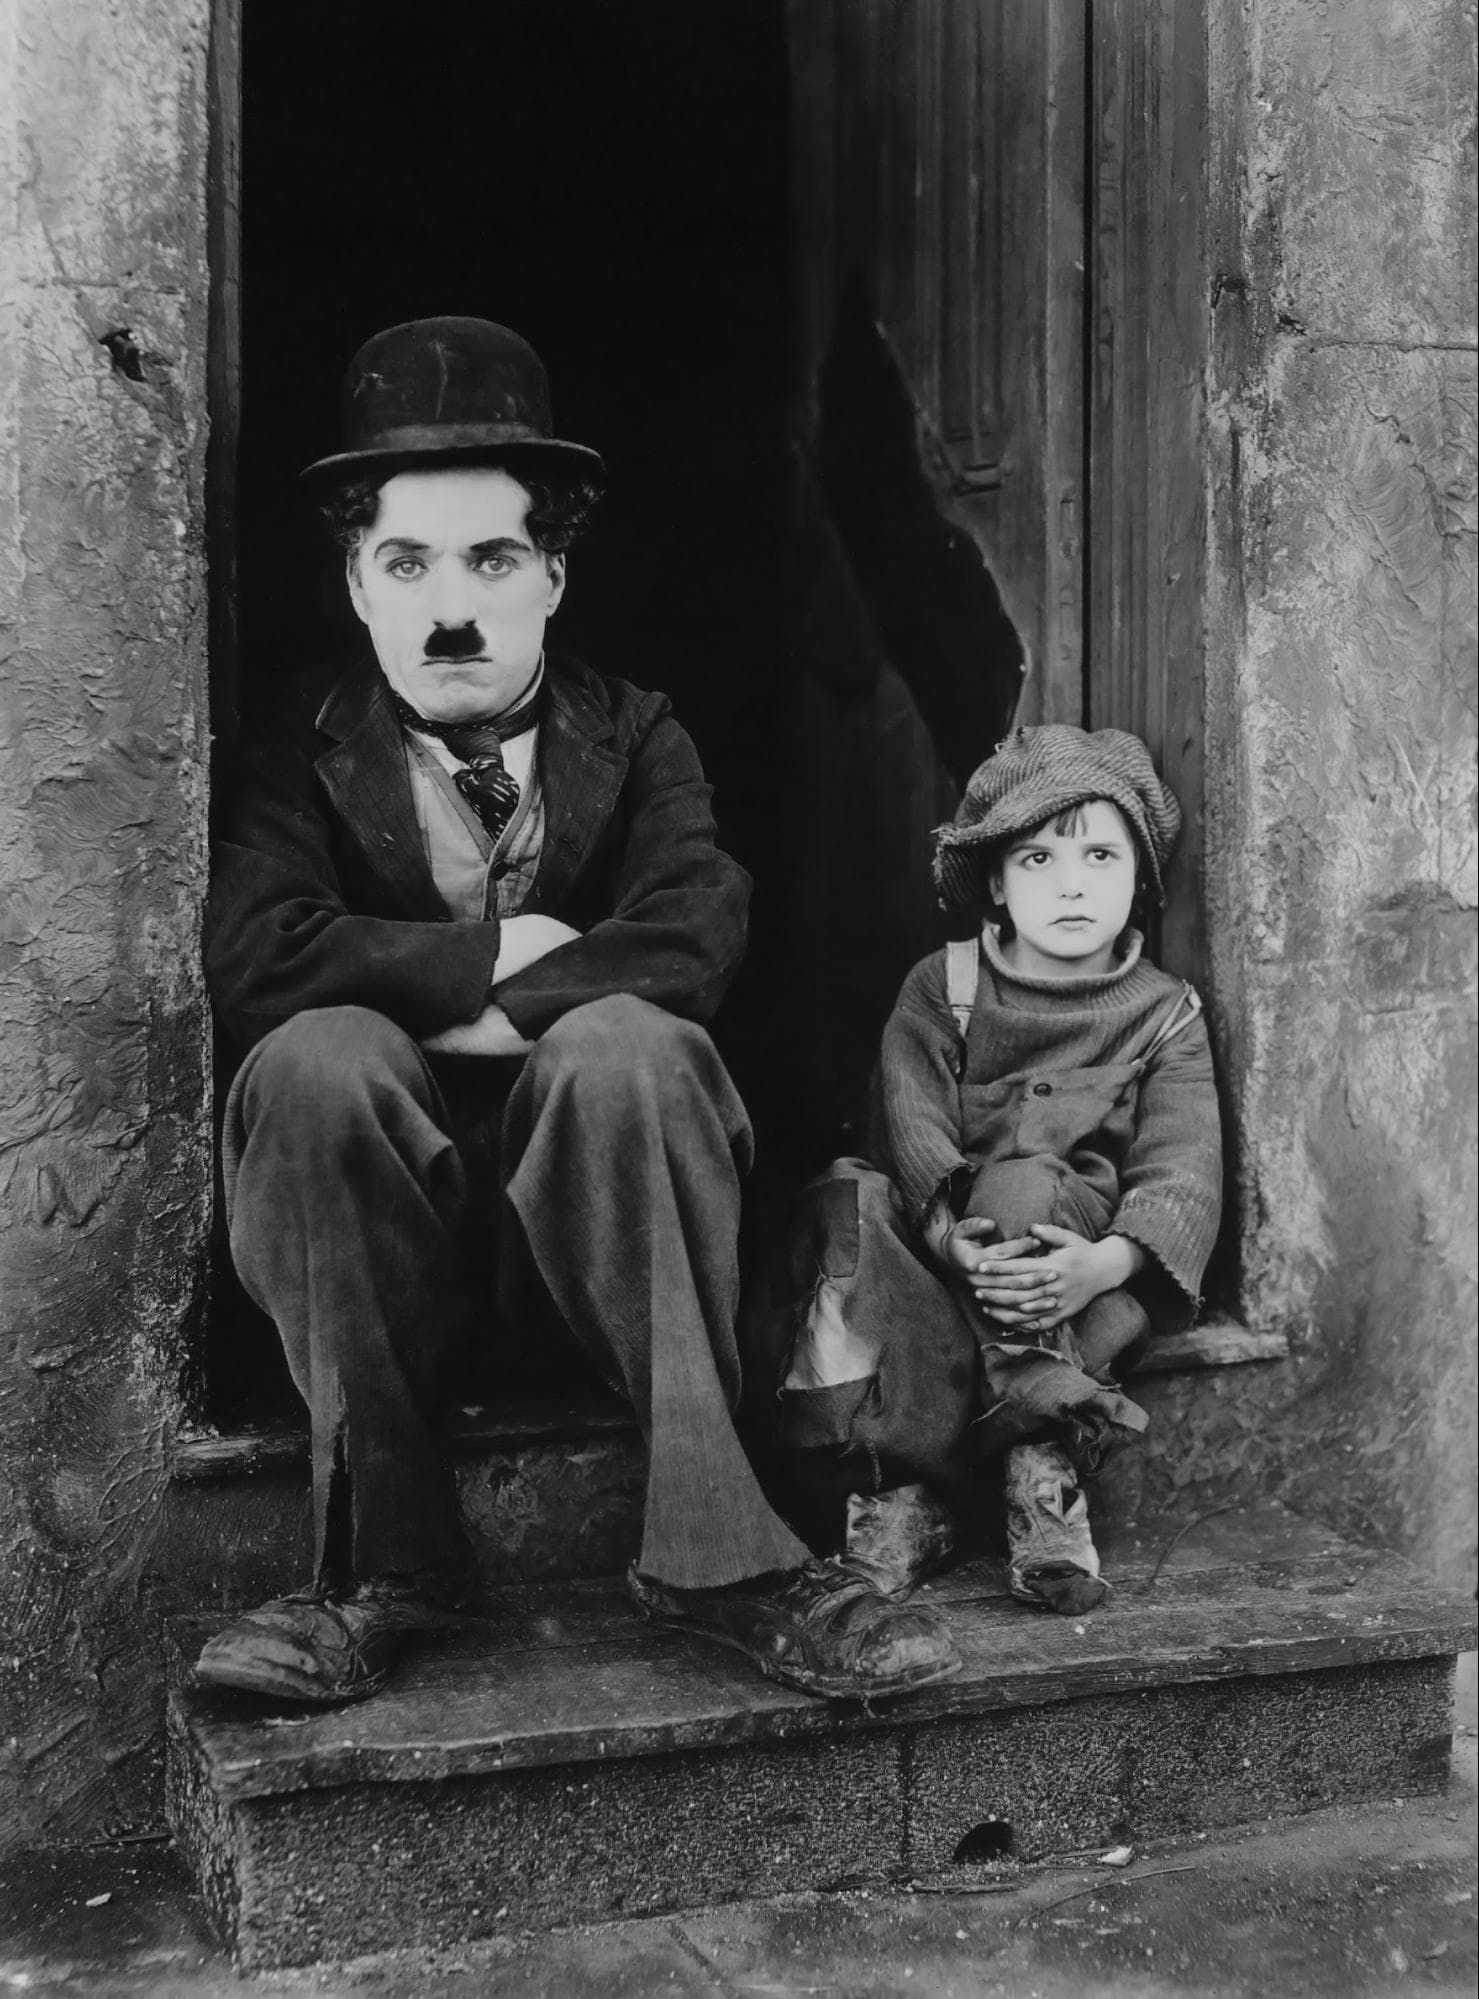 Child Actors - Child Stars - Jackie Coogan - Child Talent Agents - Studiobinder